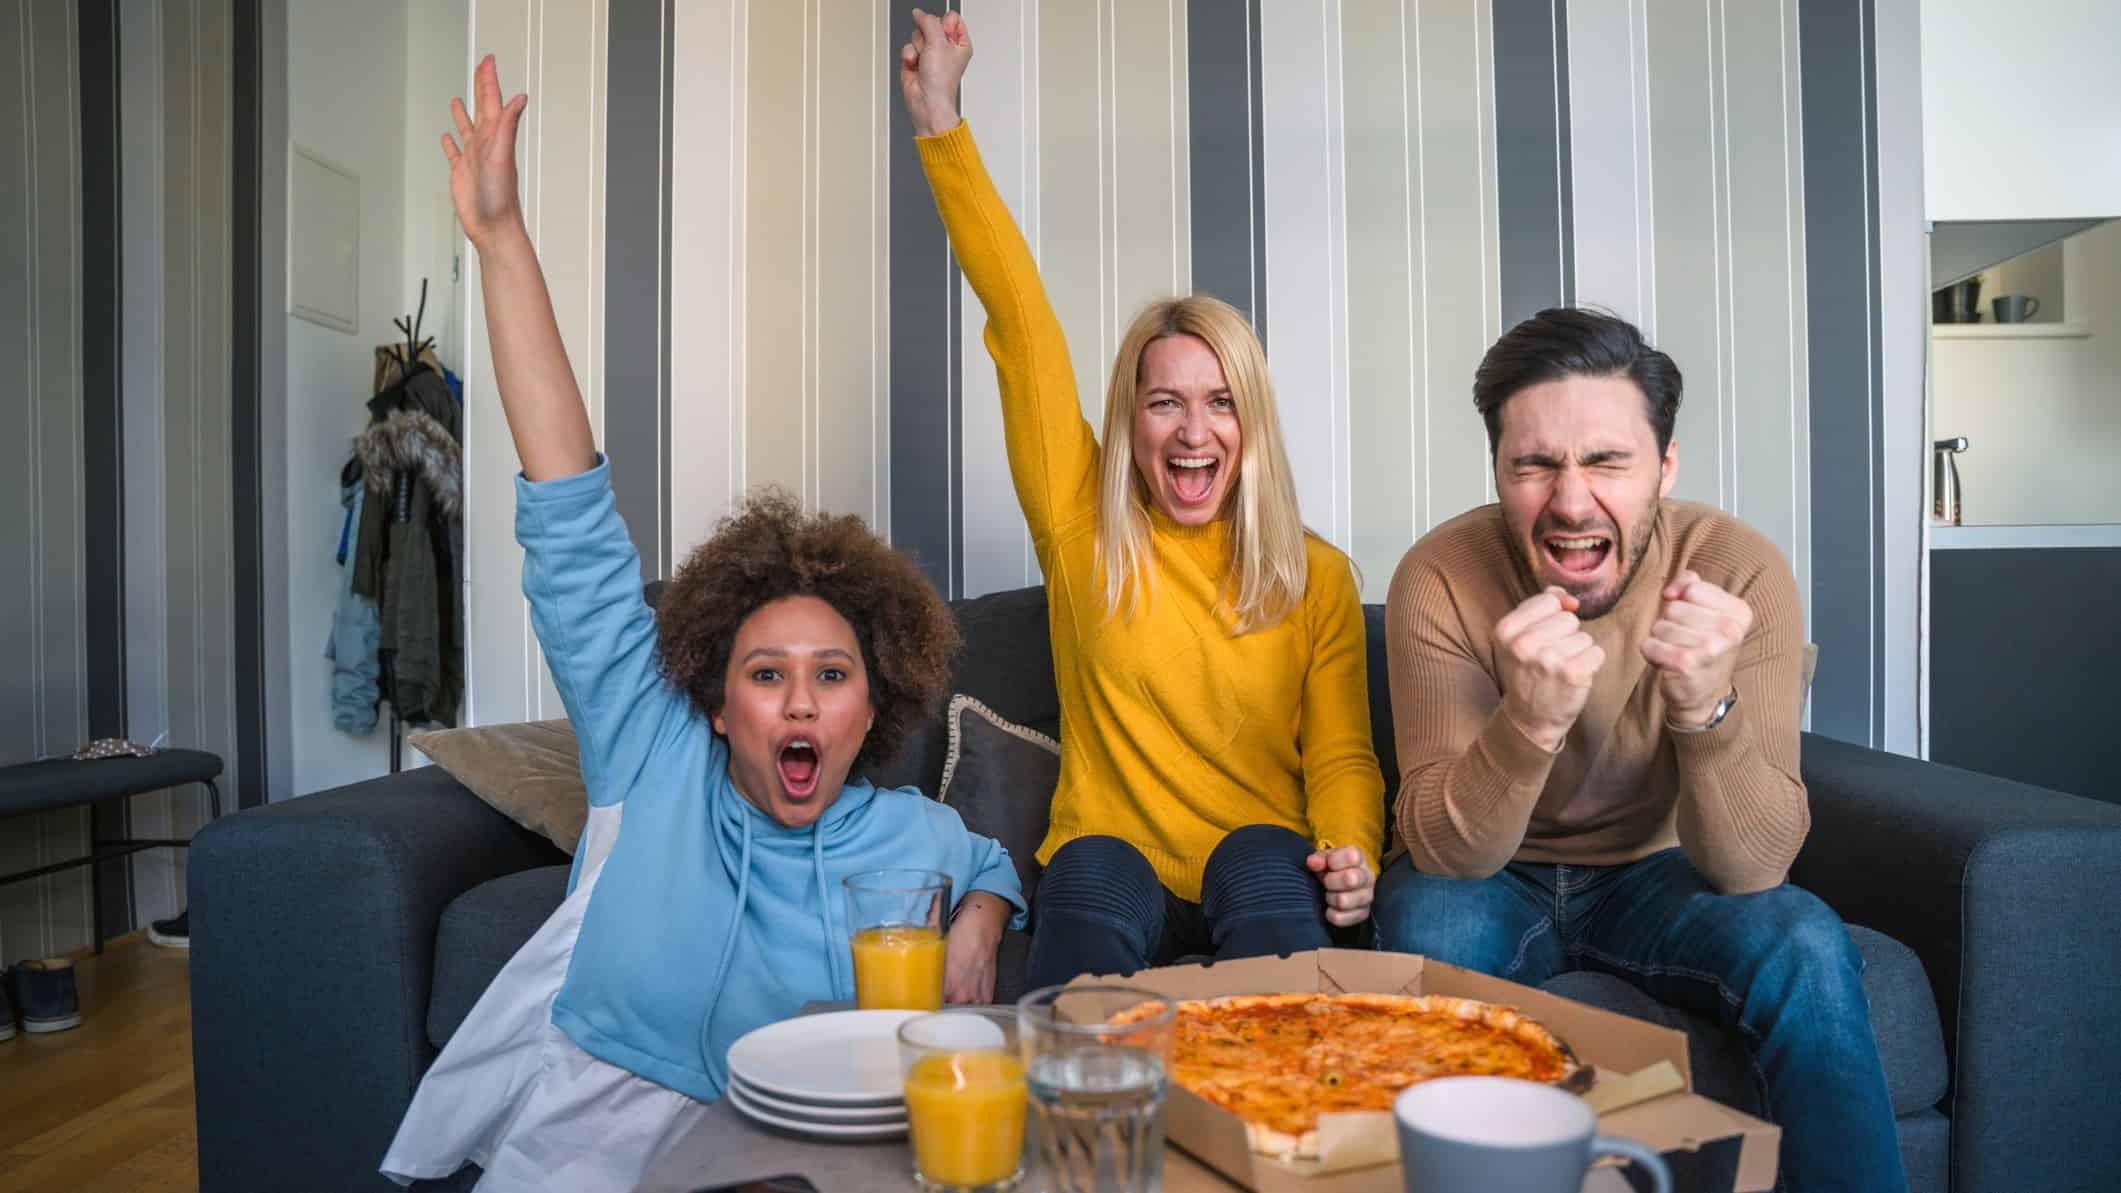 Three people sit on safe cheering with pizza on table